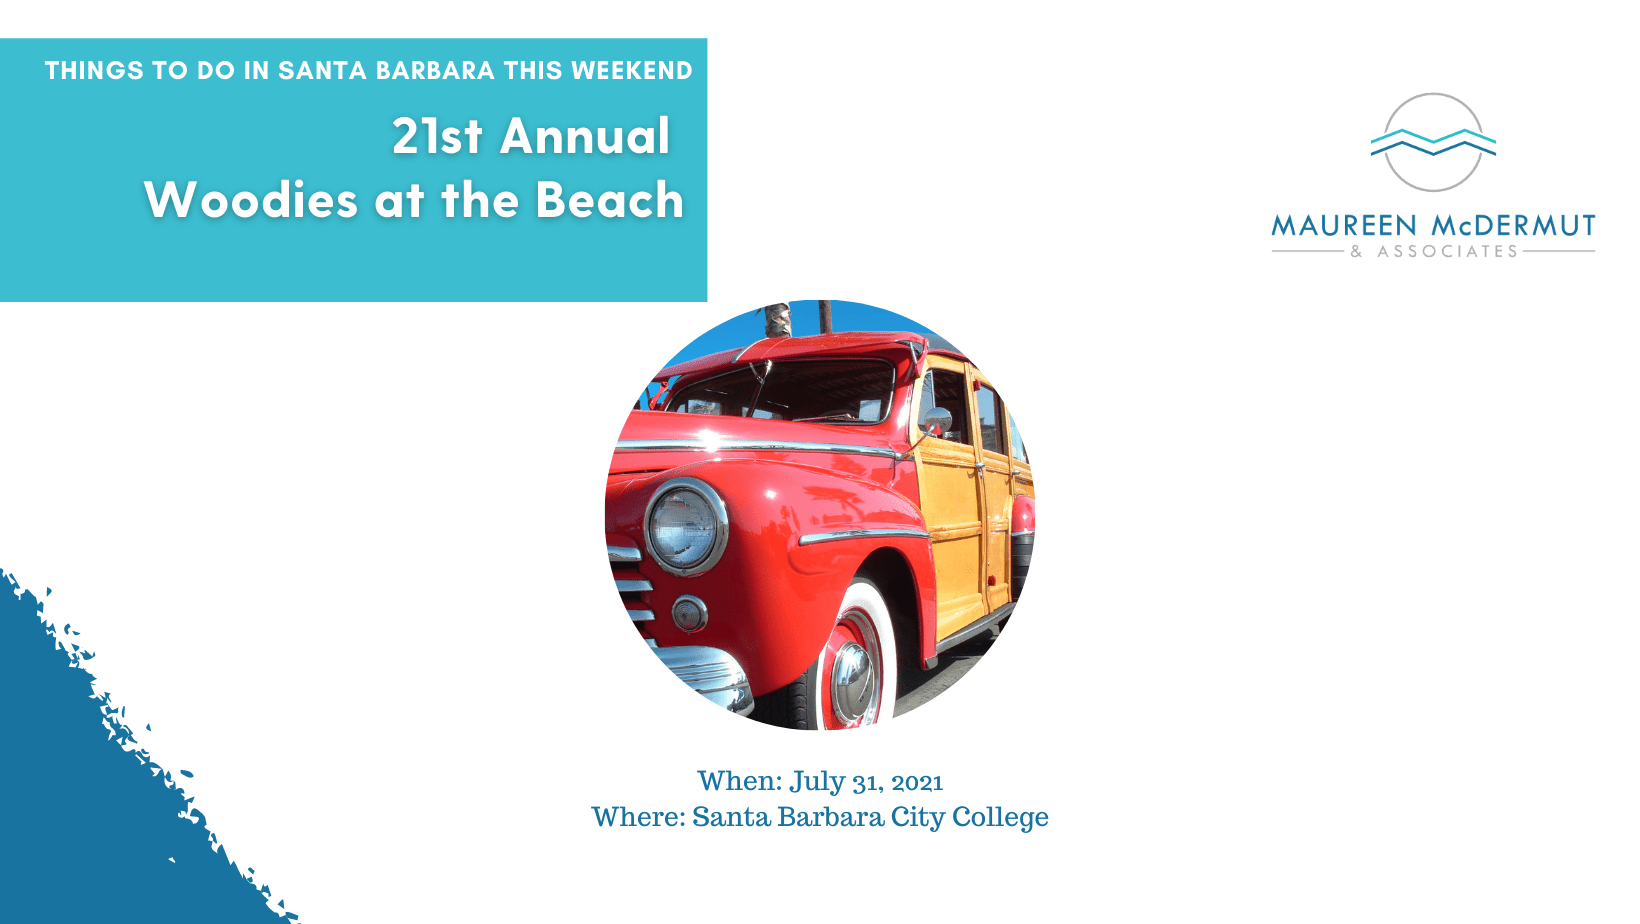 21st Annual Woodies at the Beach image